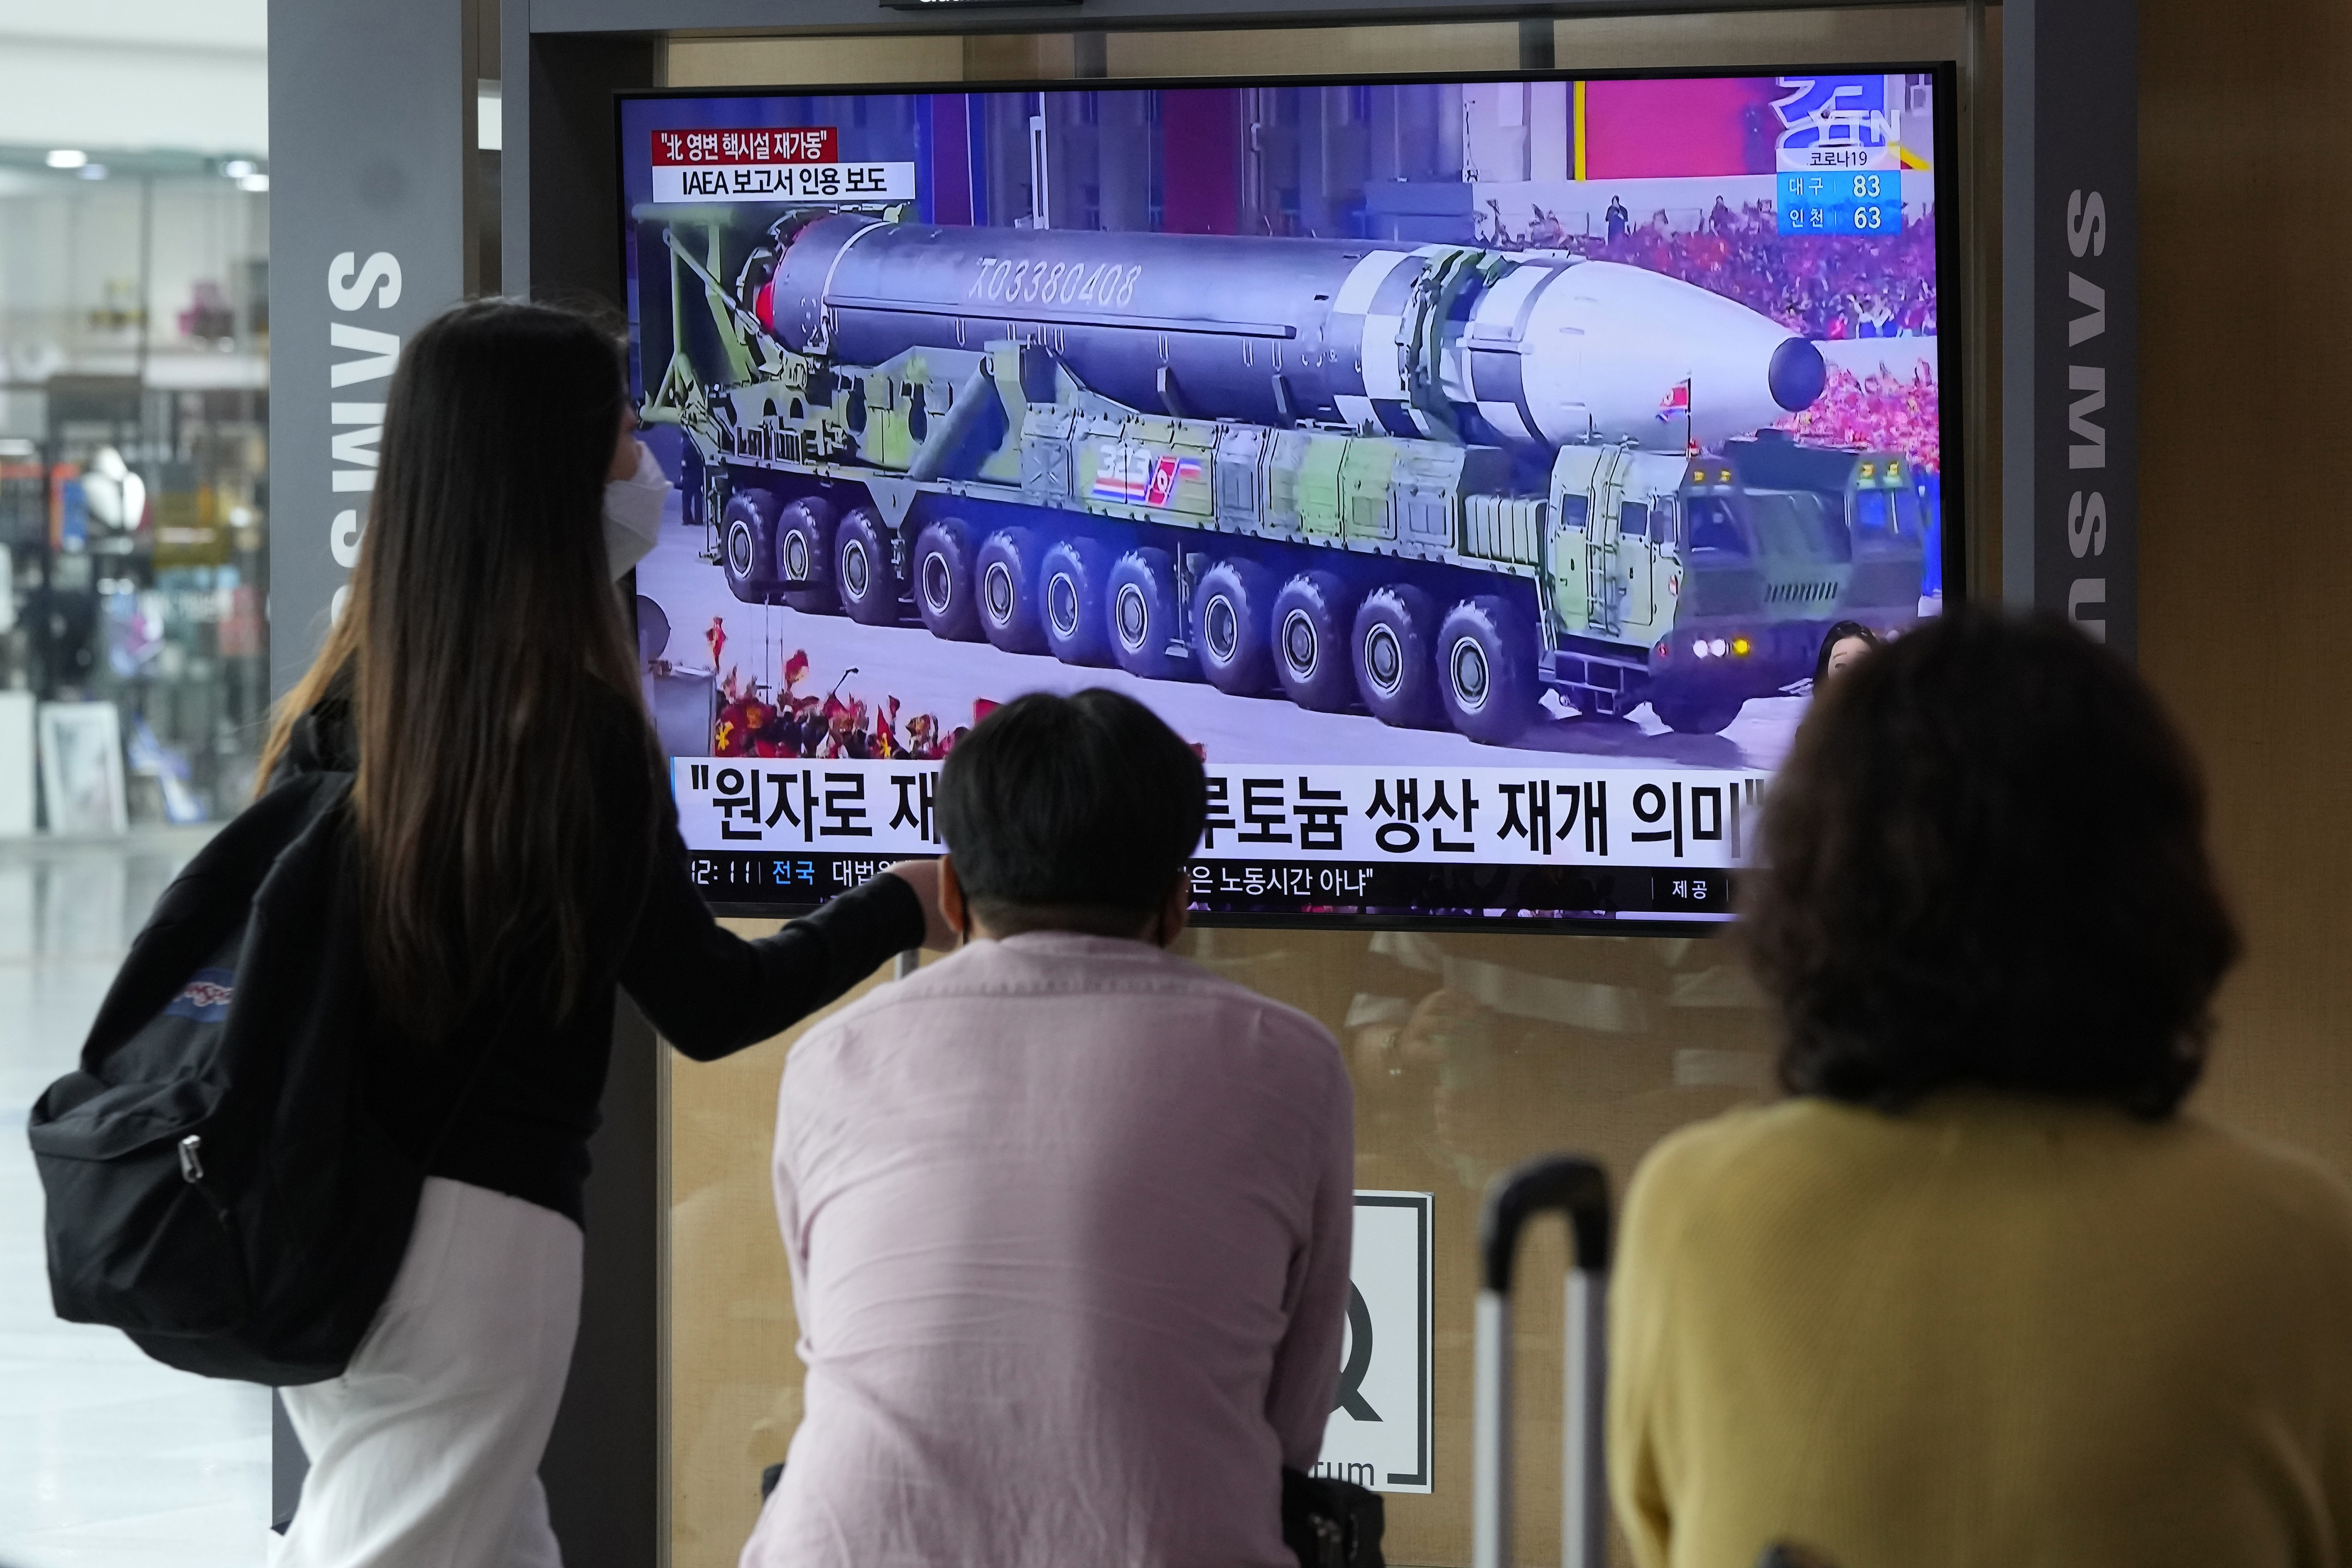 A TV screen in Seoul, South Korea, on Monday shows an image of a North Korean missile in a military parade.